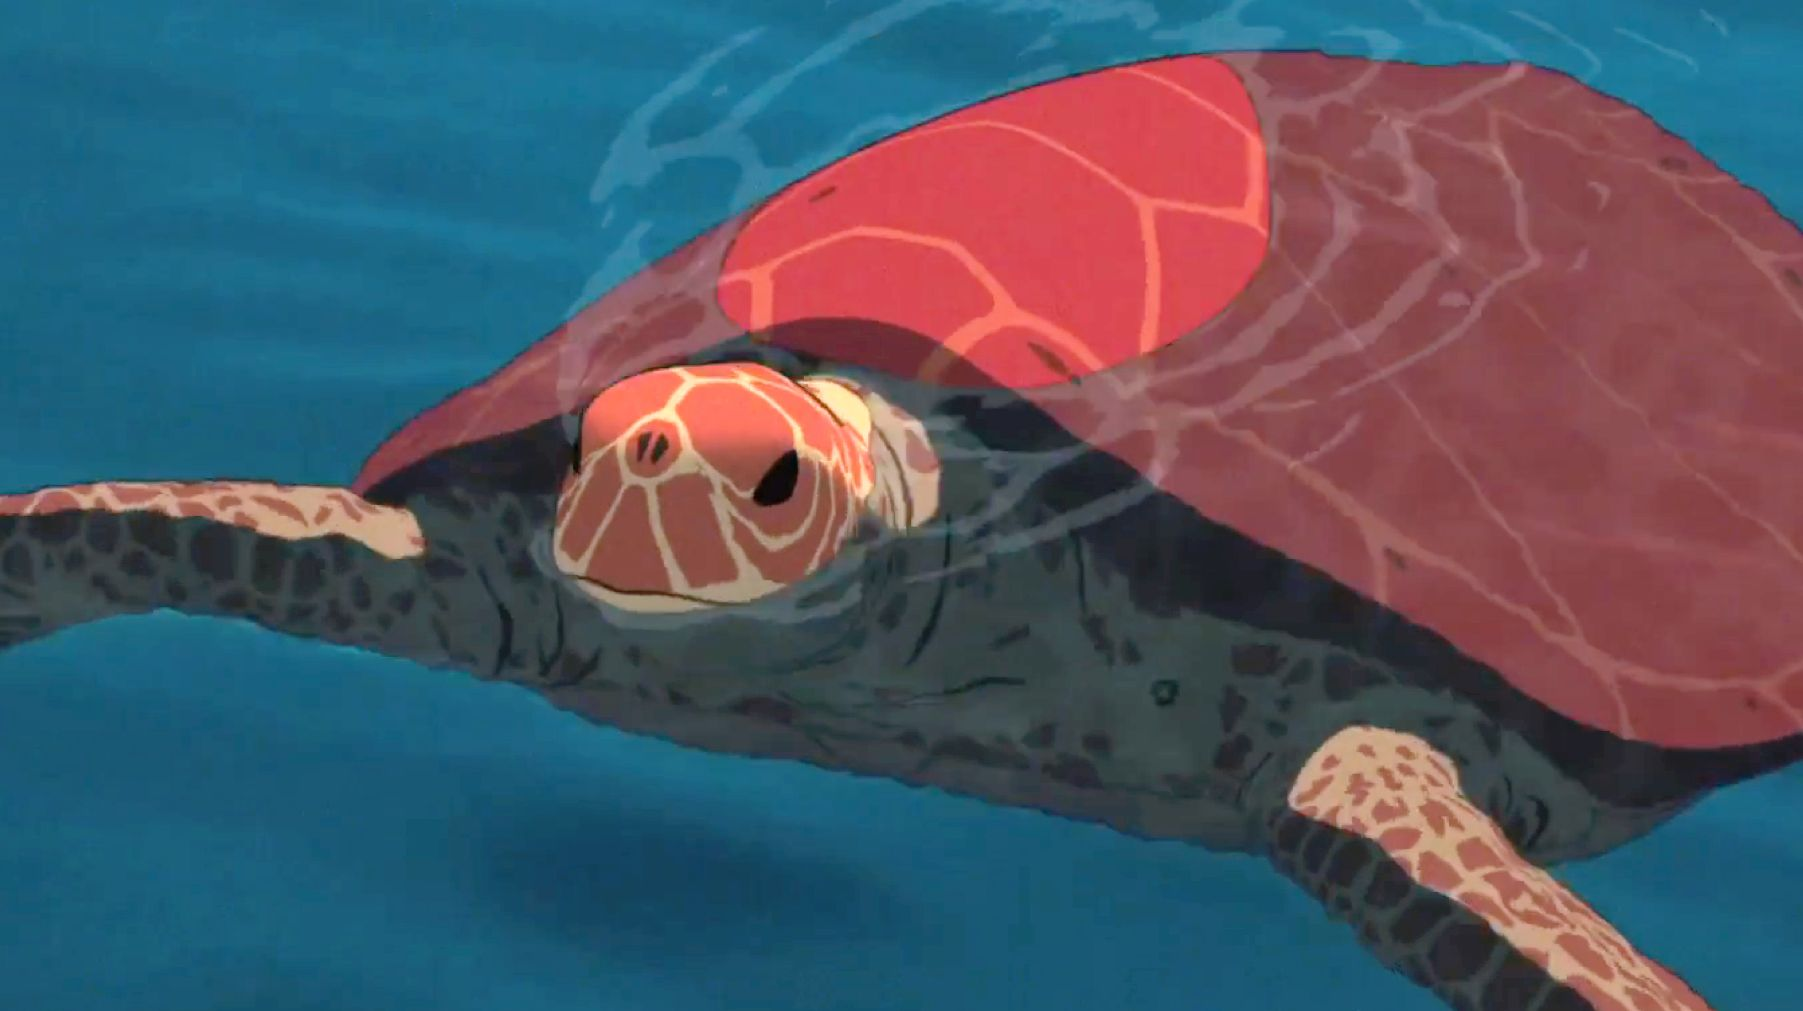 The Red Turtle Close-Up